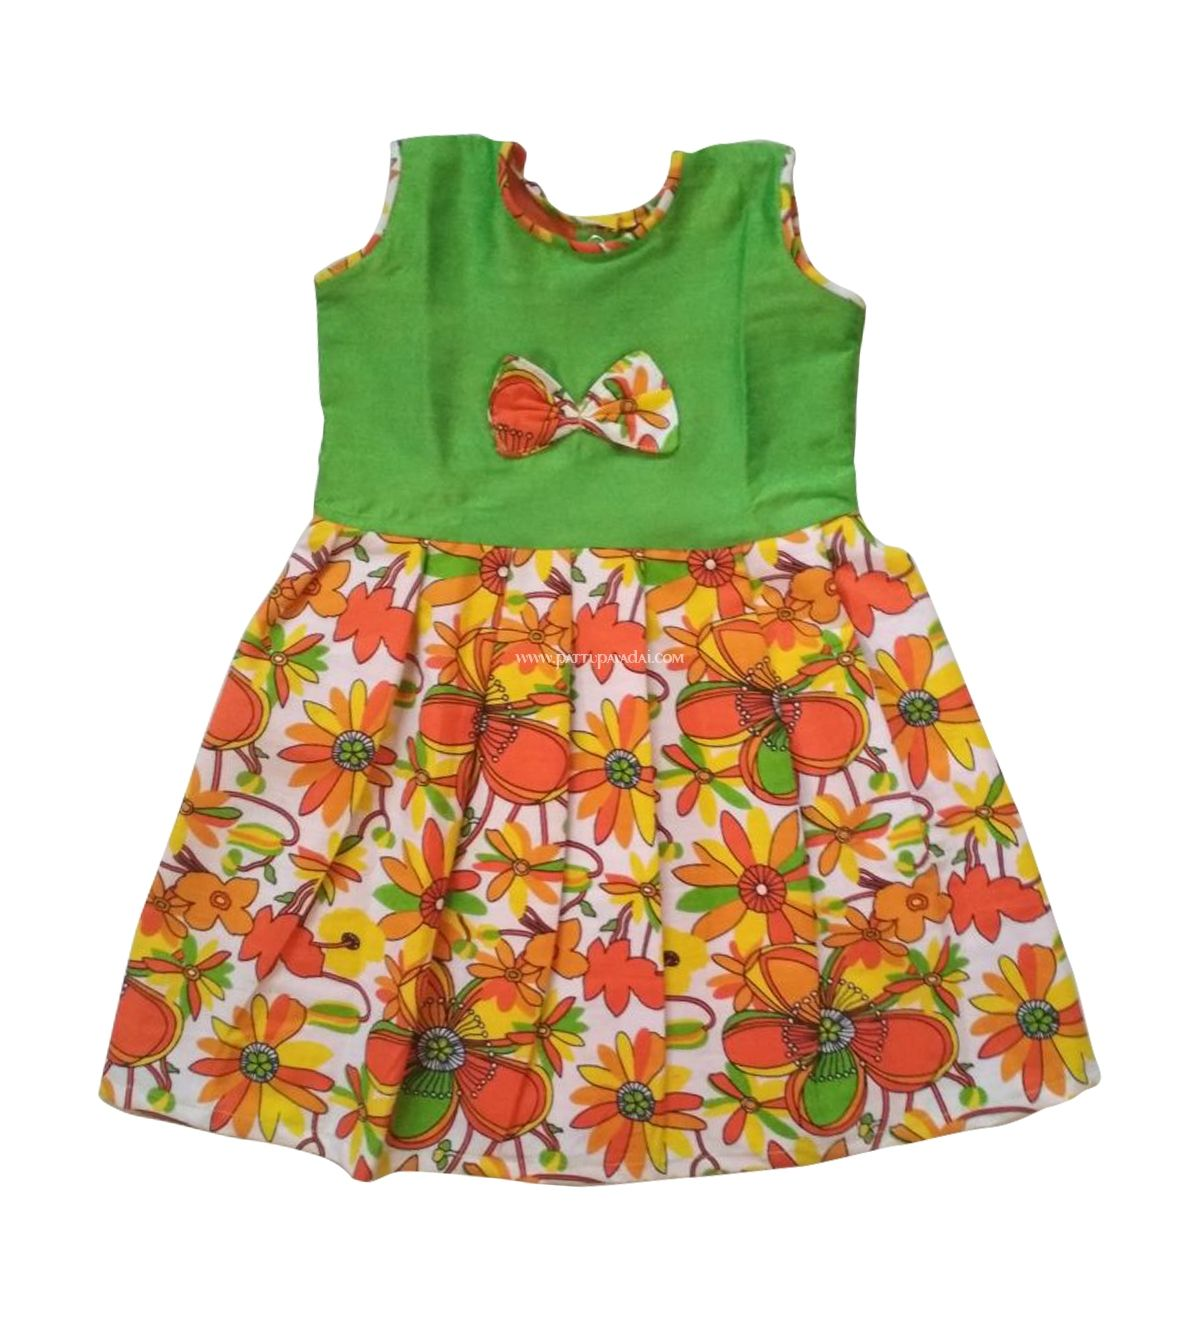 96e0091c6d Best Quality frocks at best prices, Cotton Frock Orange and Green, Suitable  for daily wear and summer.